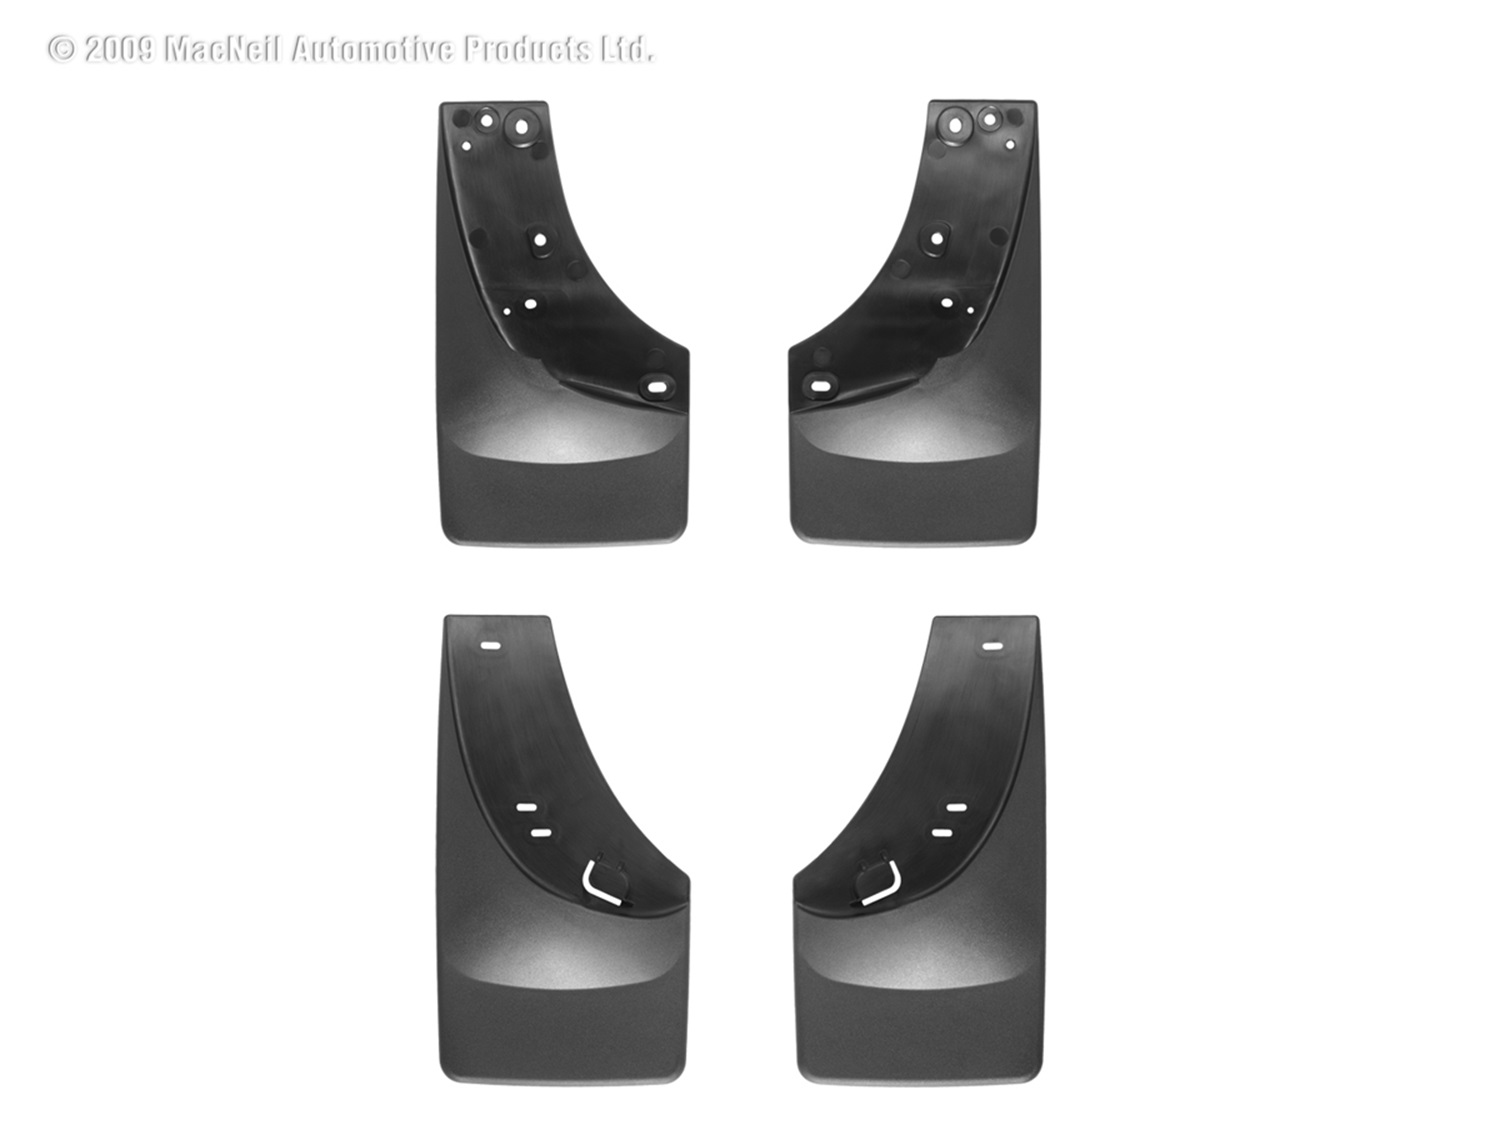 WeatherTech 110005-120005 No Drill Mudflaps, Black